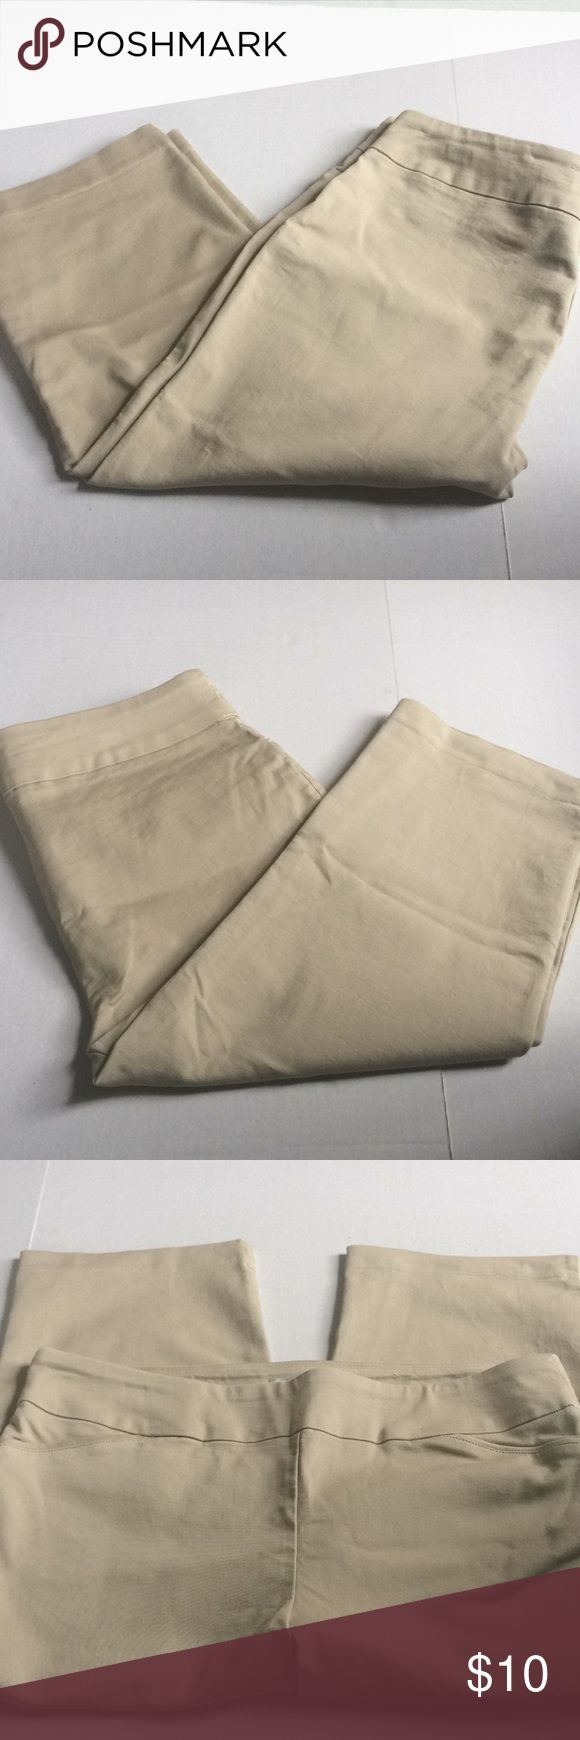 NWOT Croft & Barrow Khaki Capri pants These are NWOT croft & Barrow stretch Khaki color size large Capri pants Condition is new without tags these were never worn at all Size is a large  Fabric makeup is the last pic  Measurements  Inseam 20' Waist 18' Length 31' Bundles and offers are always welcome  HAPPY POSHING POSHERS croft & barrow Pants Capris